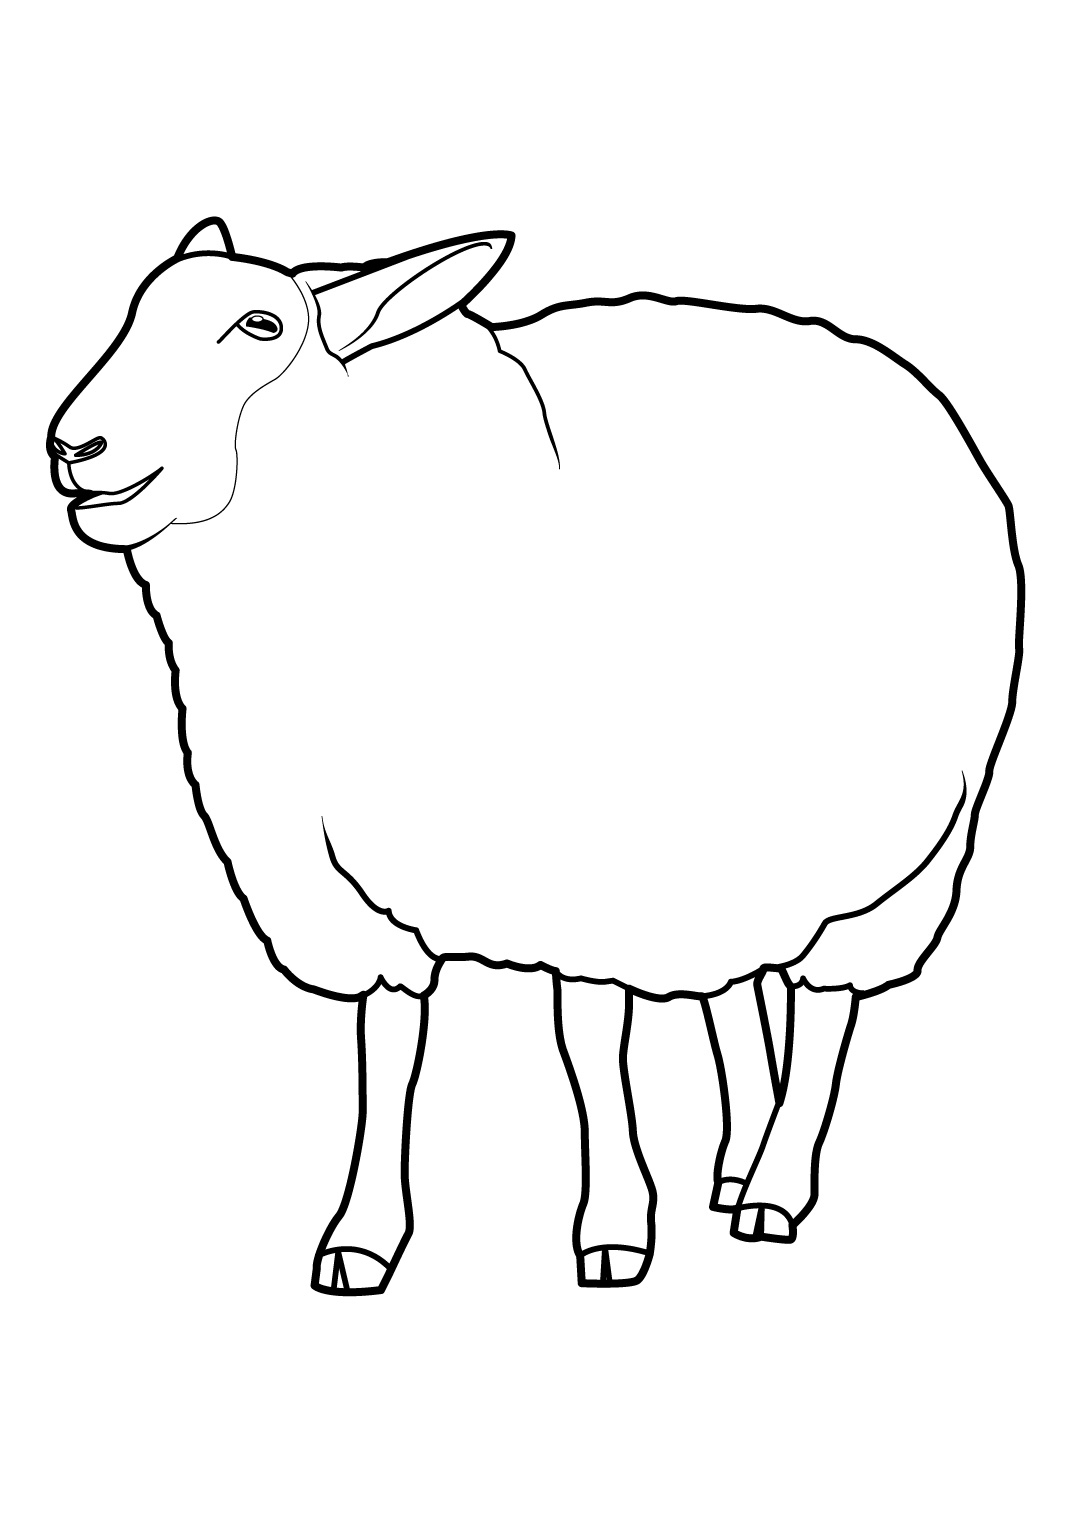 Mouton #14 (Animaux) – Coloriages À Imprimer à Photo De Mouton A Imprimer